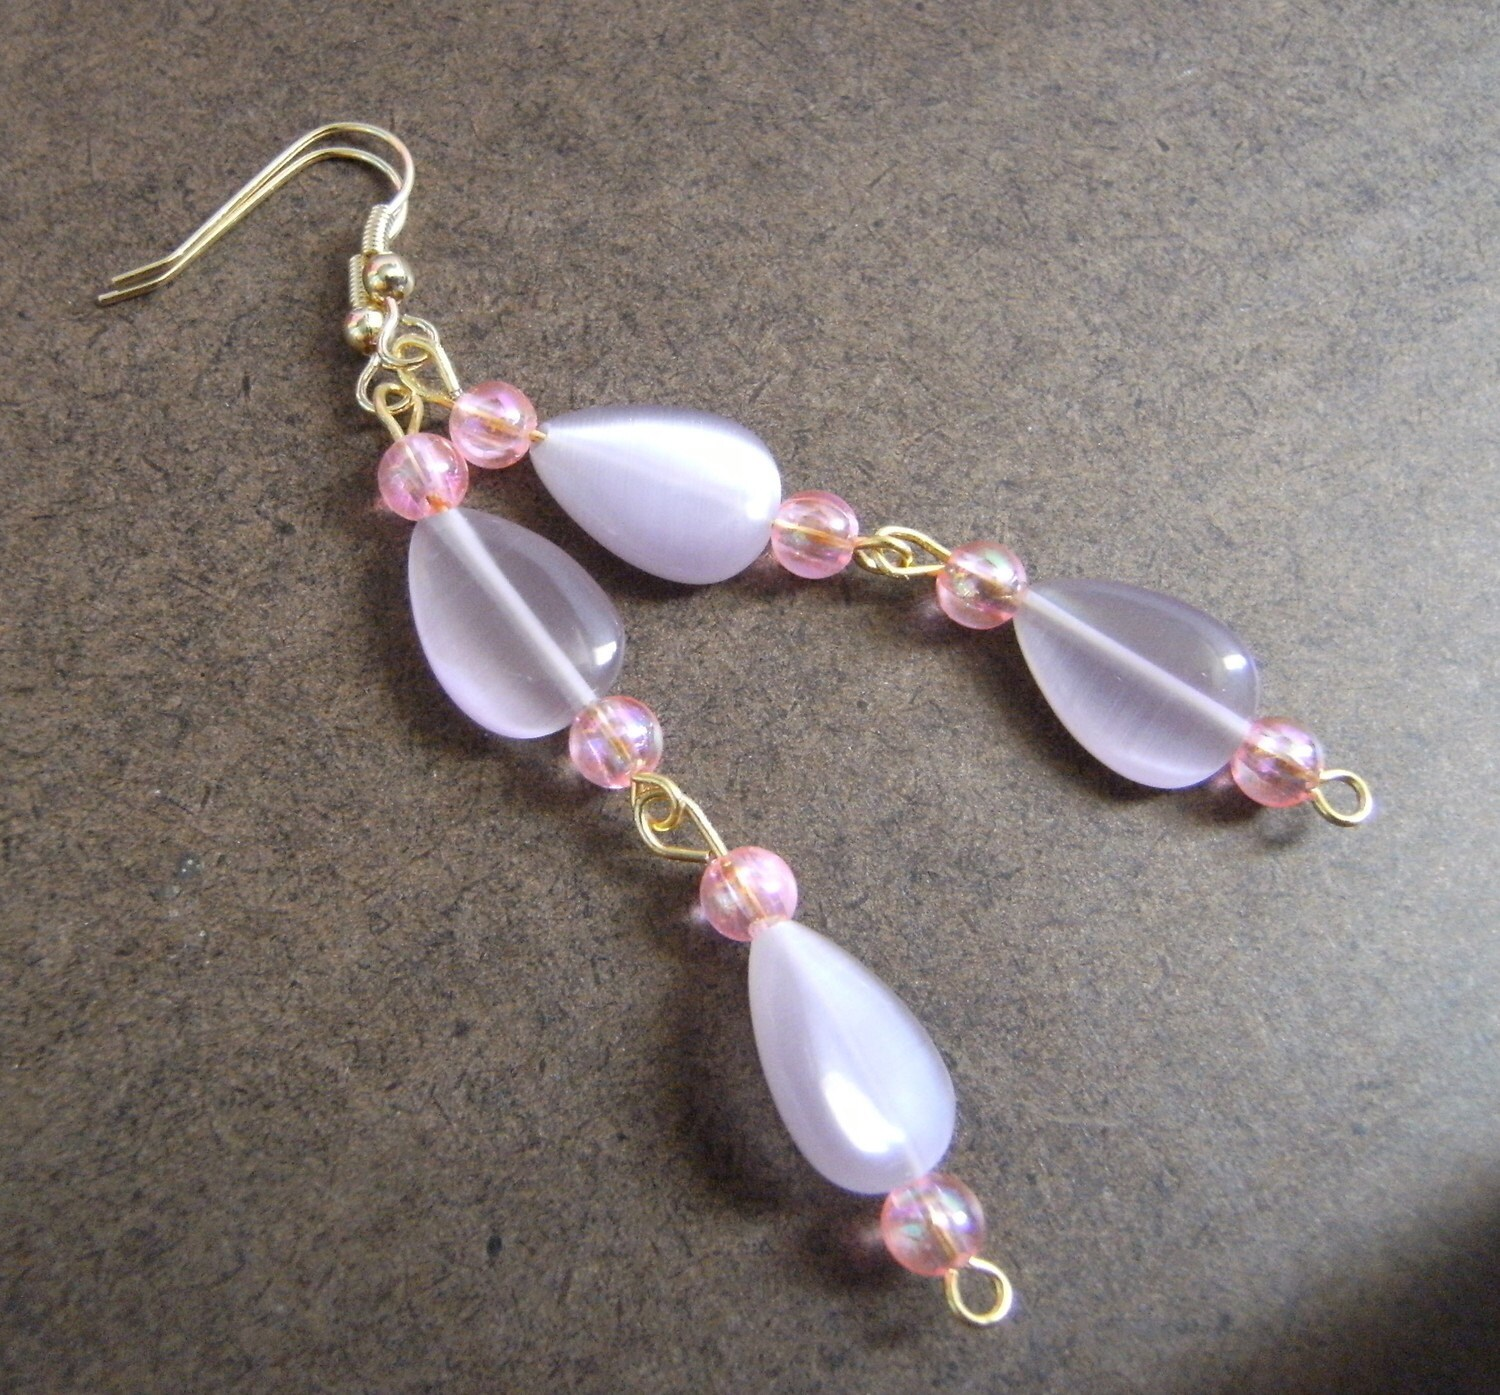 Creme de Violet Beaded Dangle earrings by SatinDollCo on Etsy from etsy.com